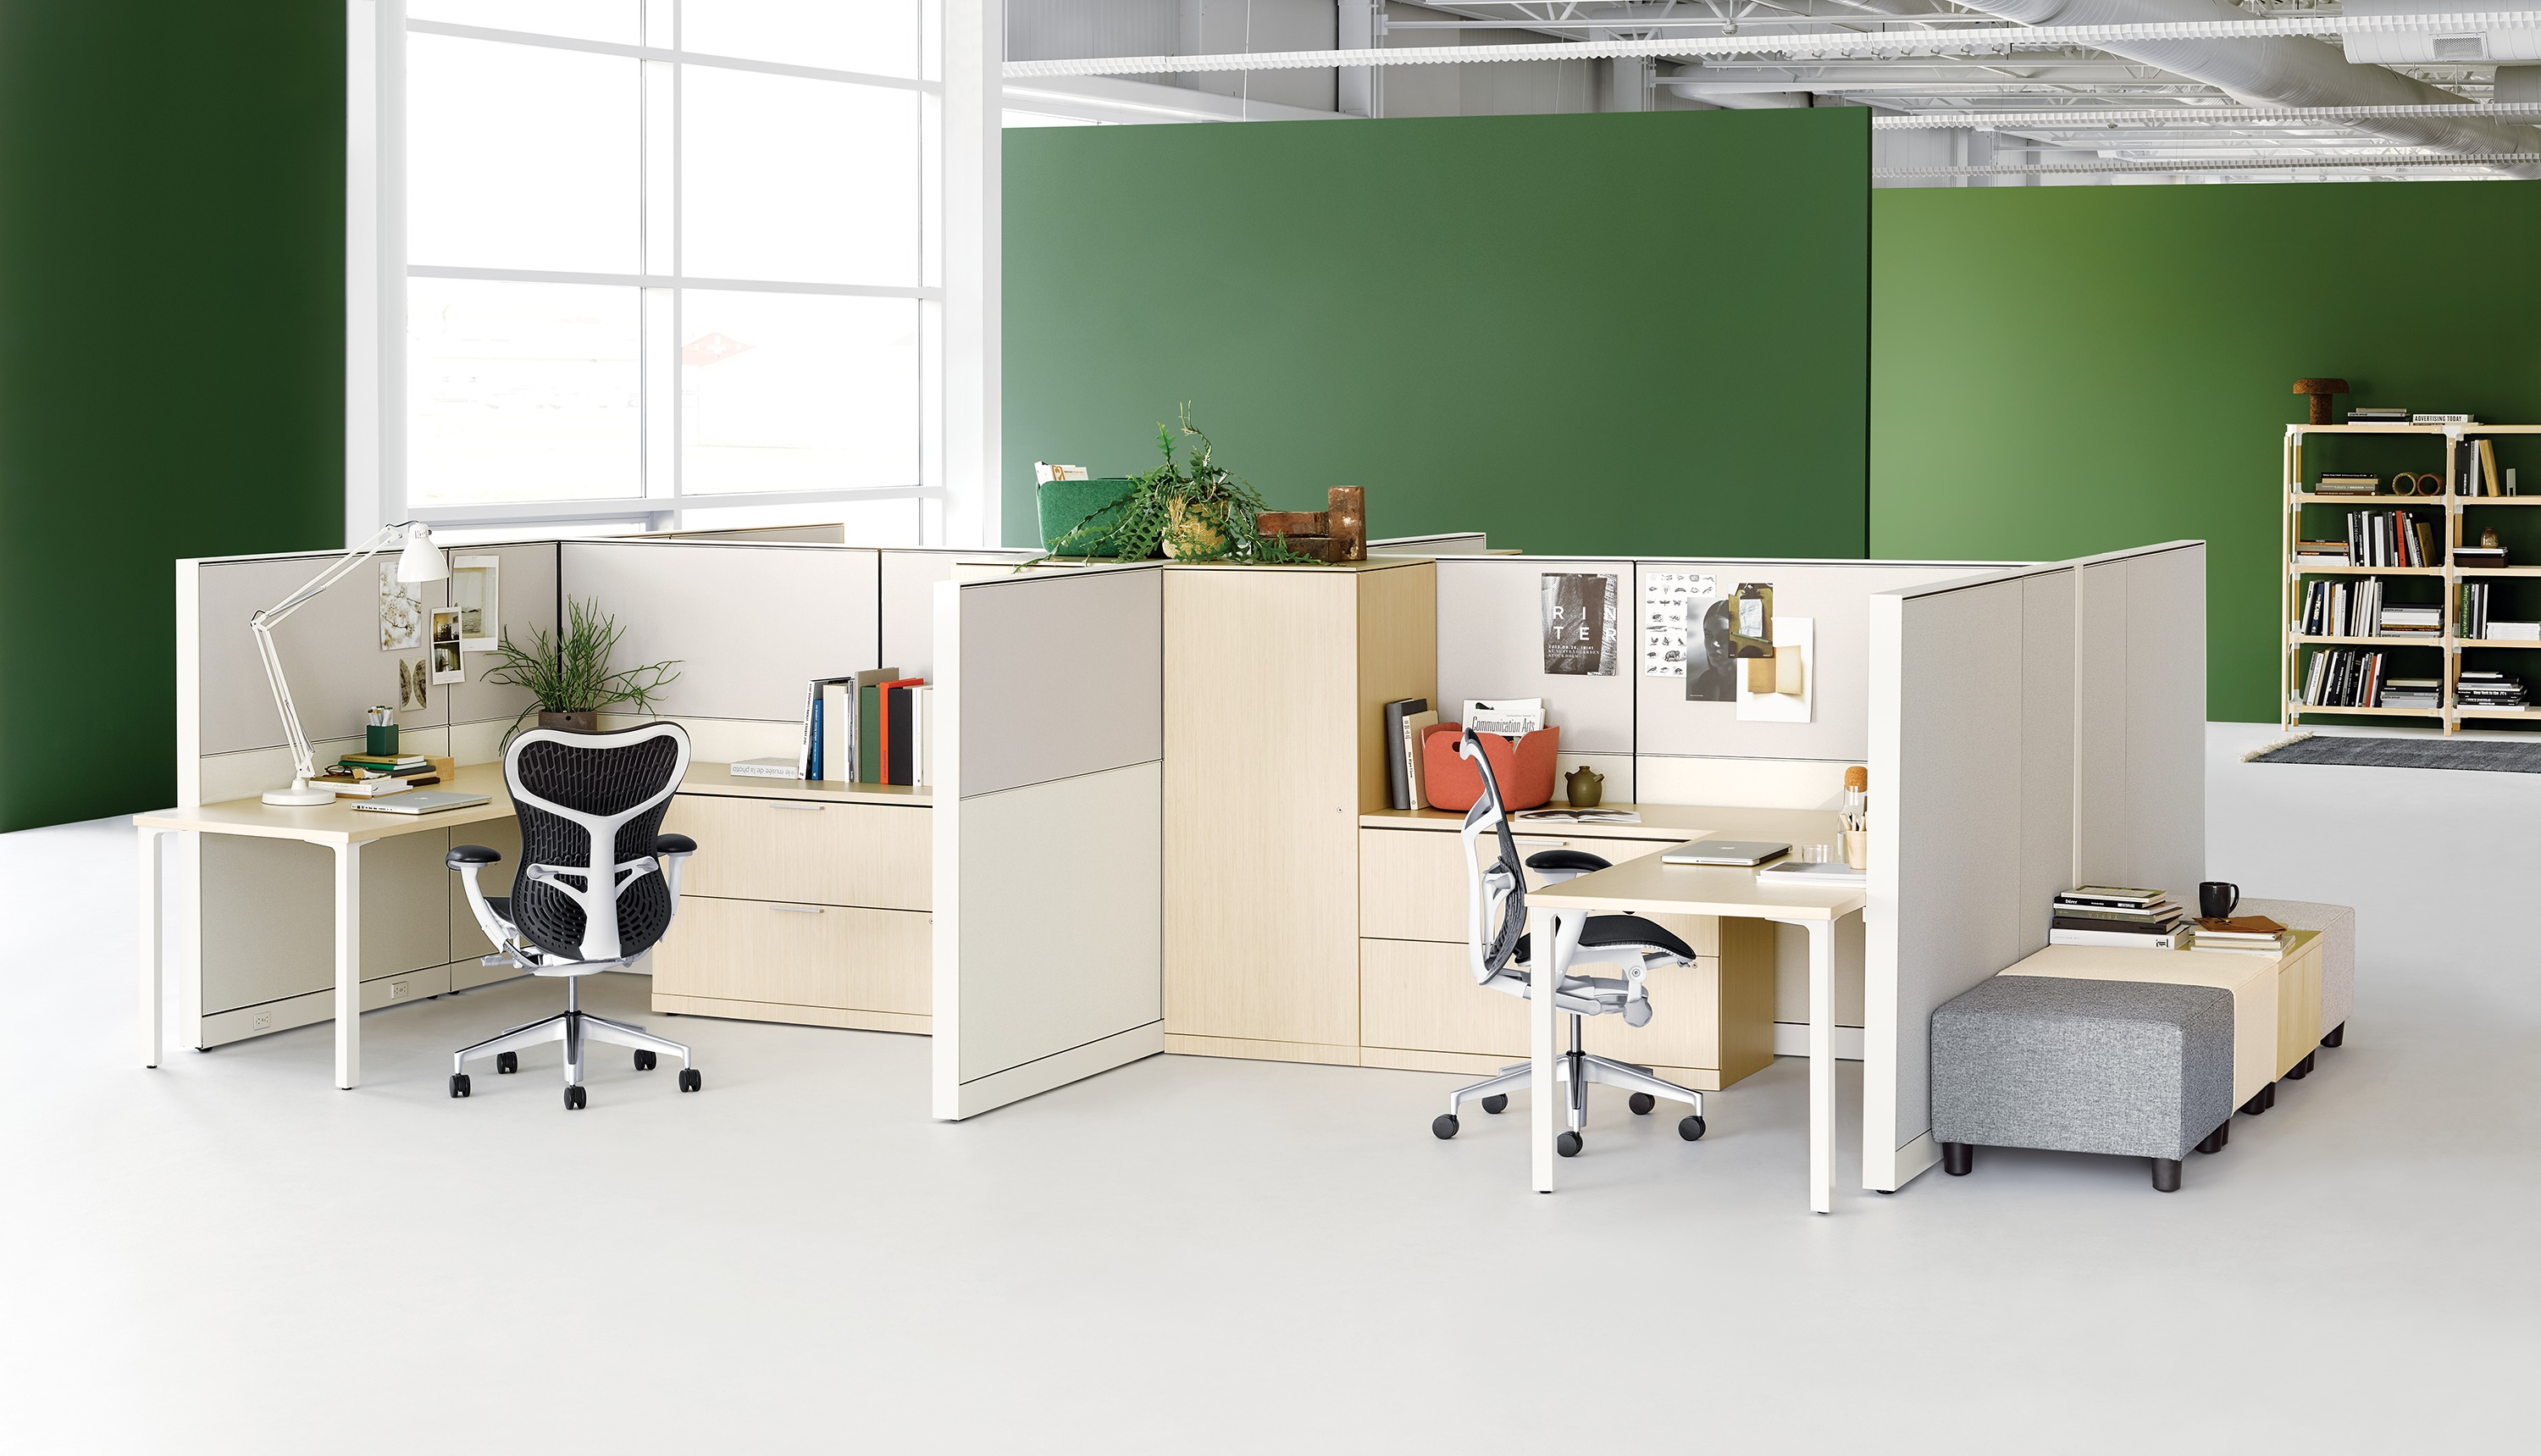 Herman Miller Office Furniture Solutions For An Open Plan